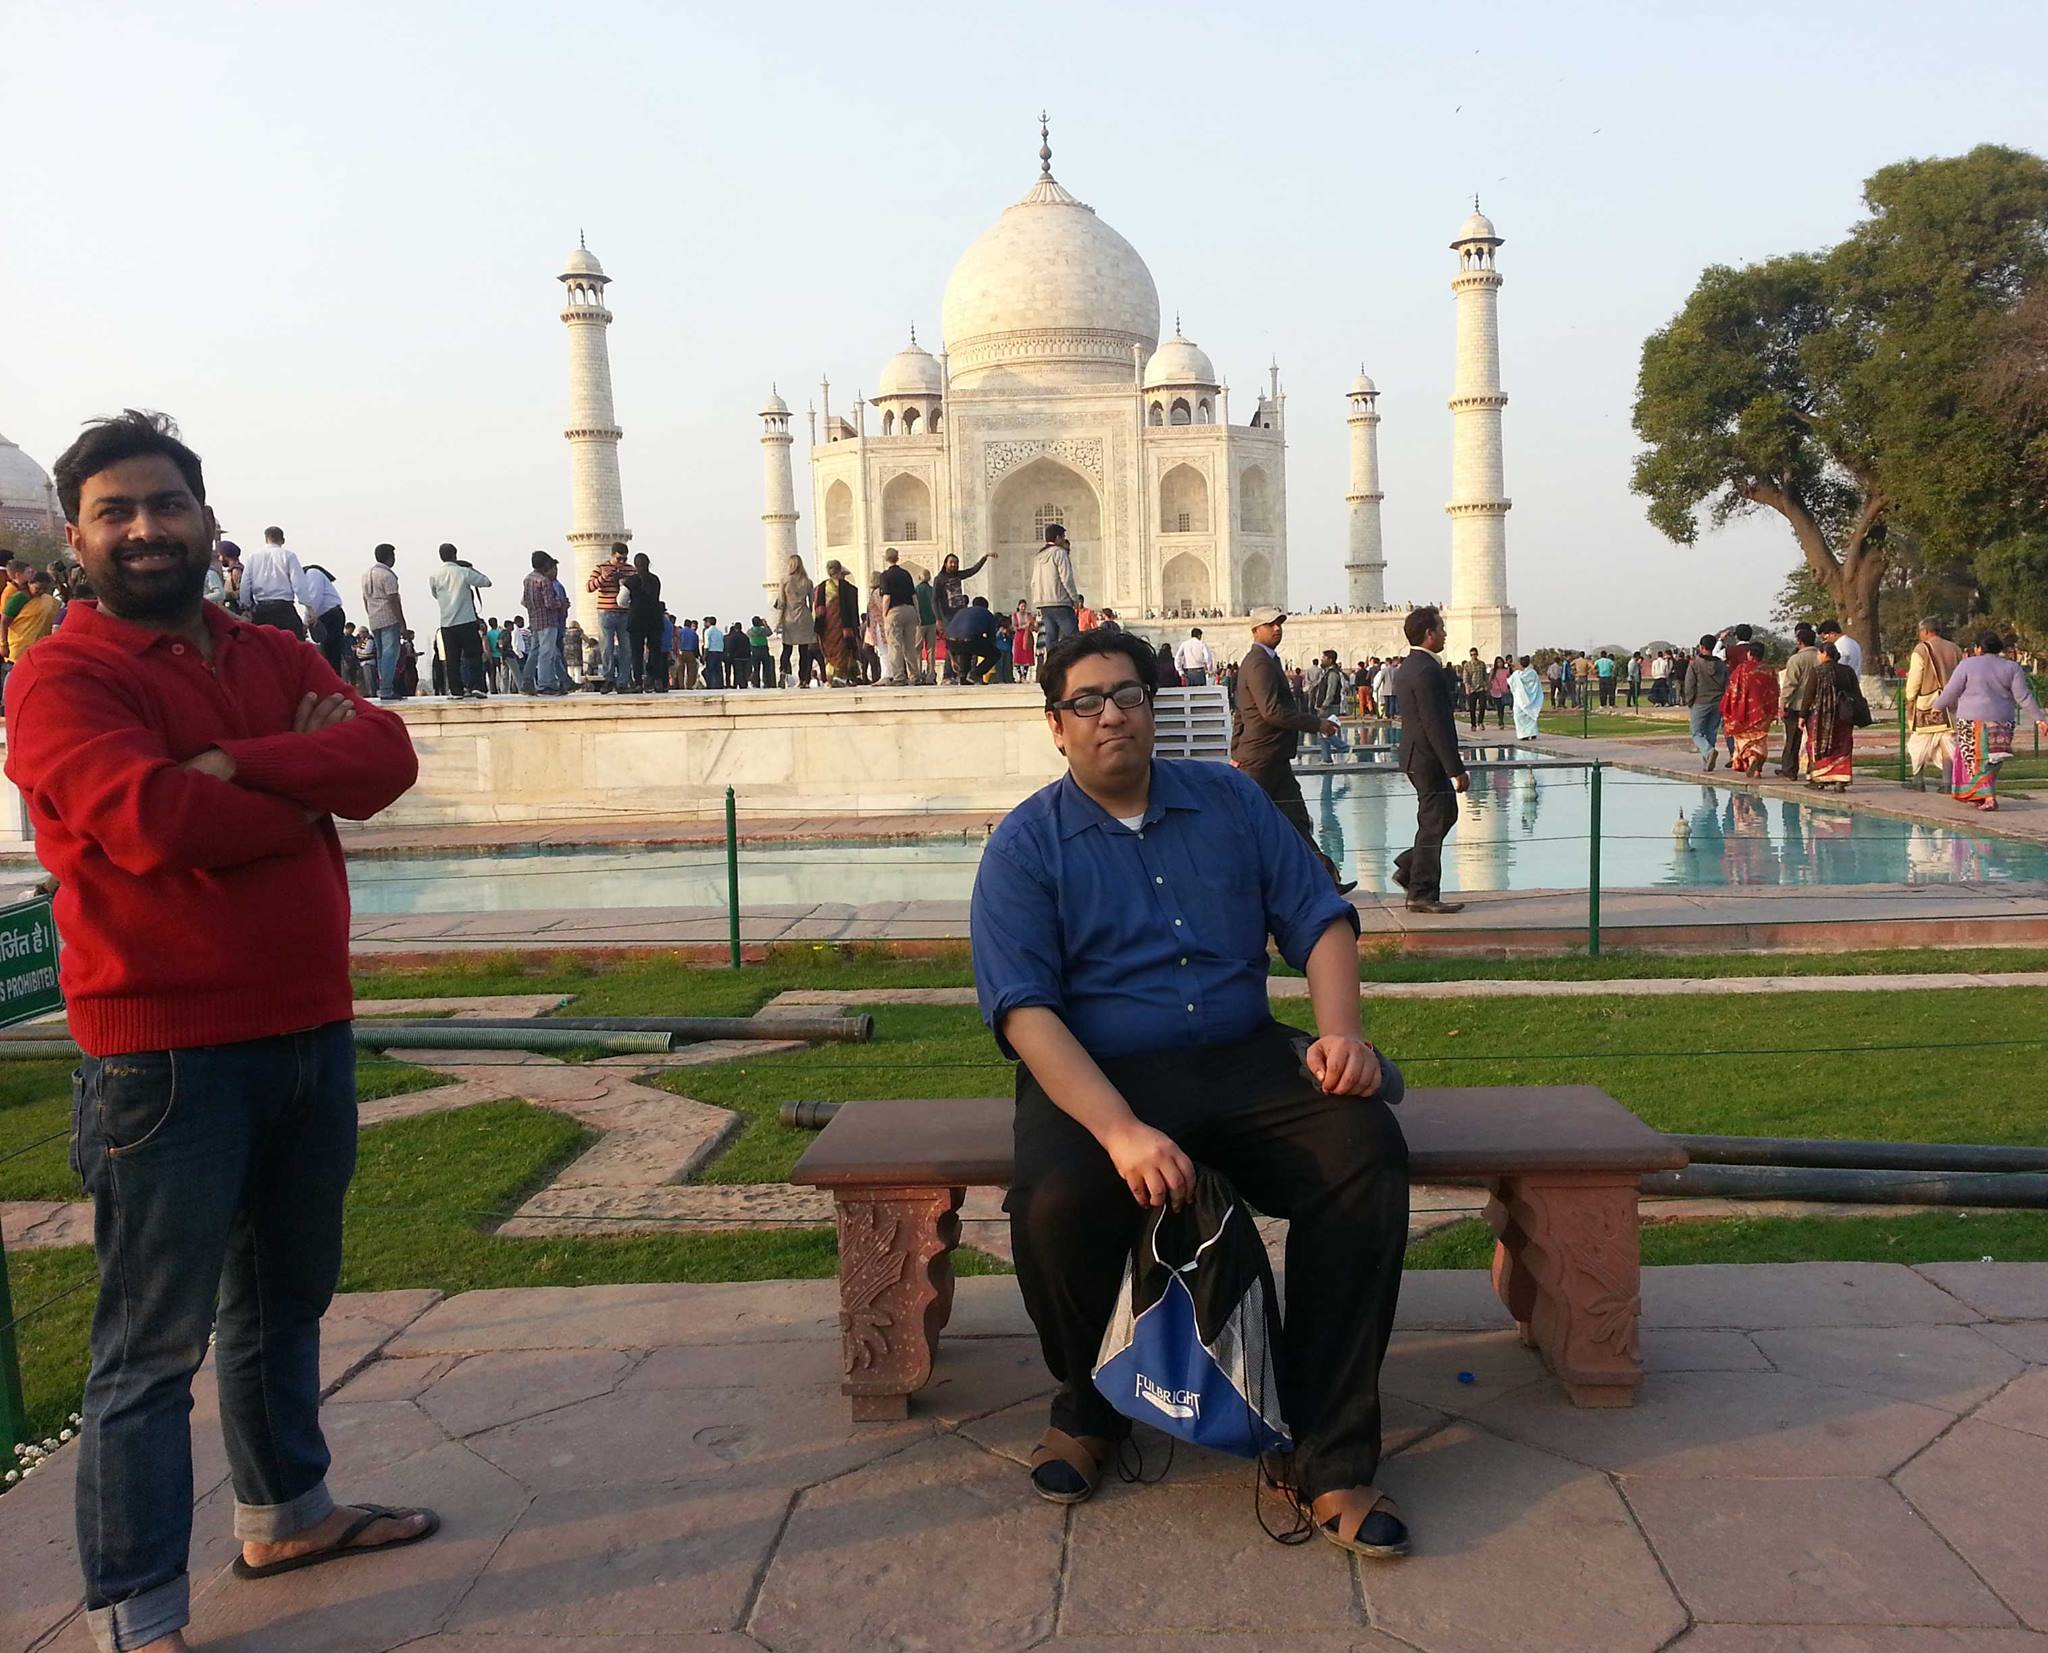 FAZLI AZEEM AT The taj mahal in india after the south asian autism conference. (2015)